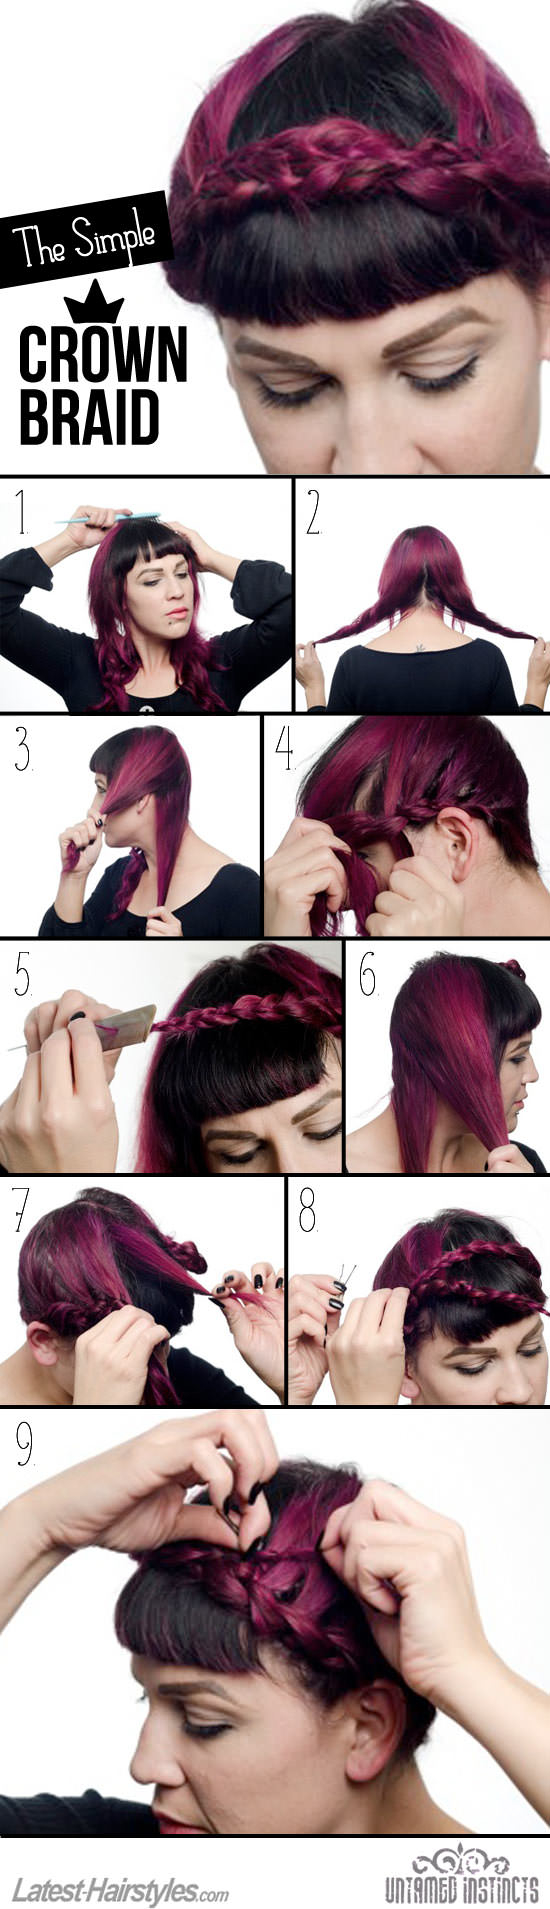 Crown braid hair tutorial